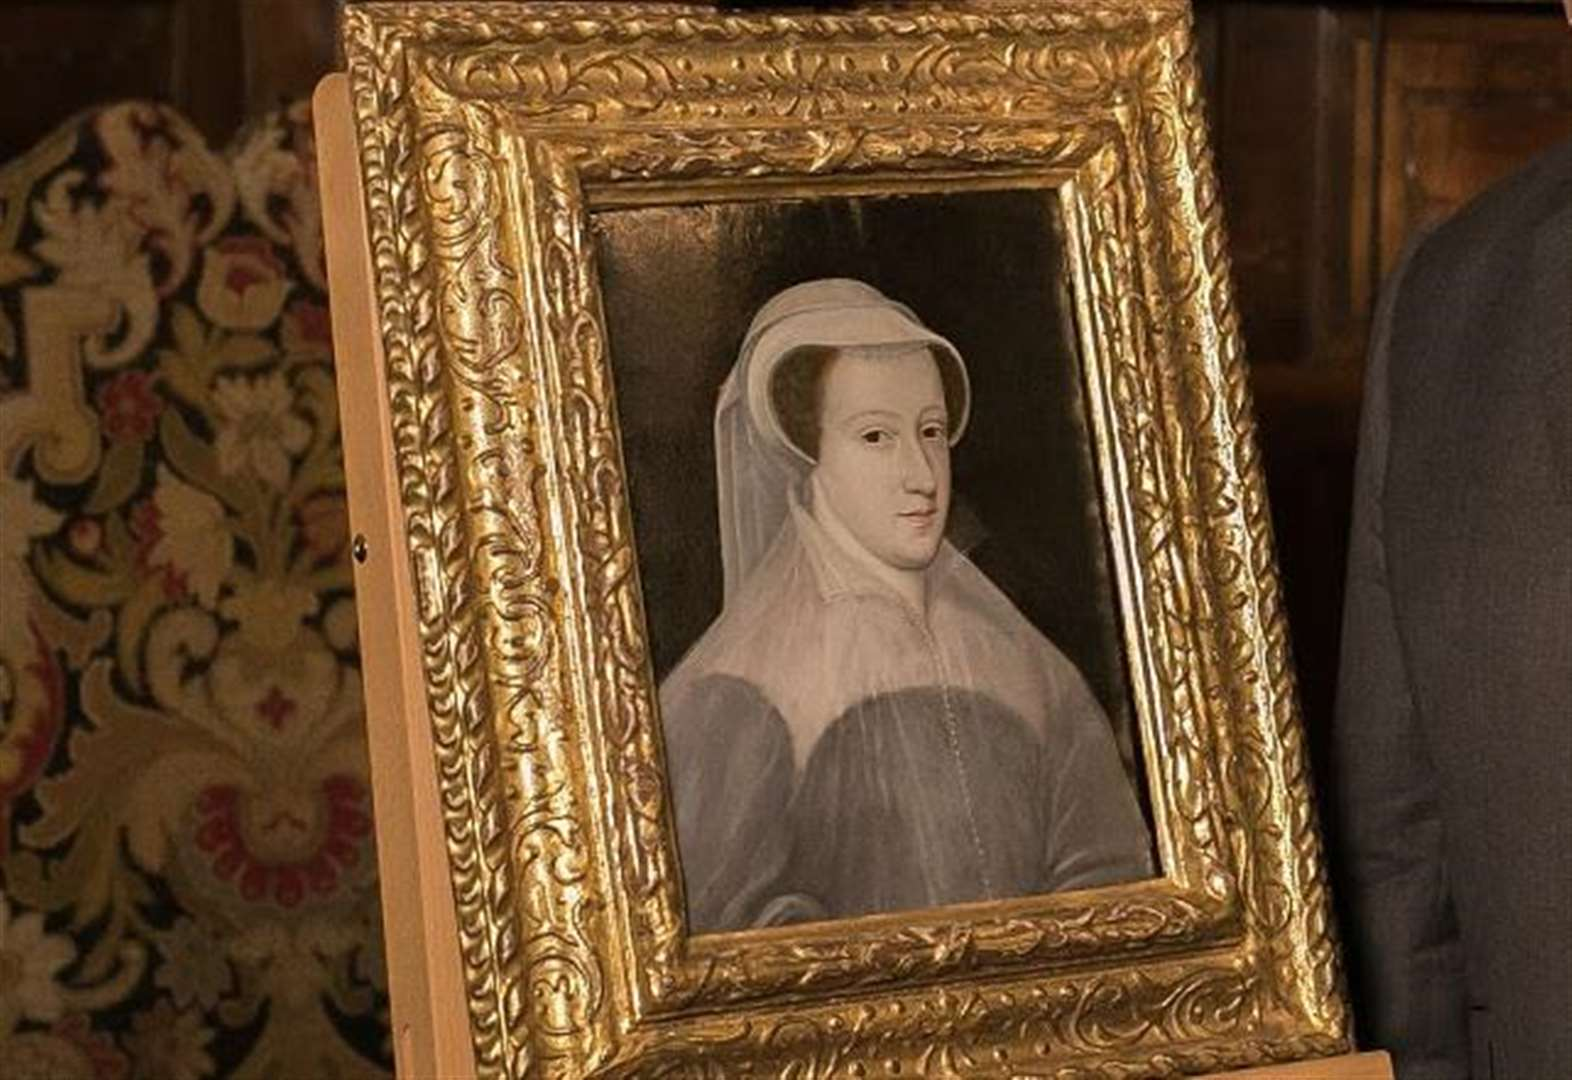 Rare painting of Mary Queen of Scots to go on display